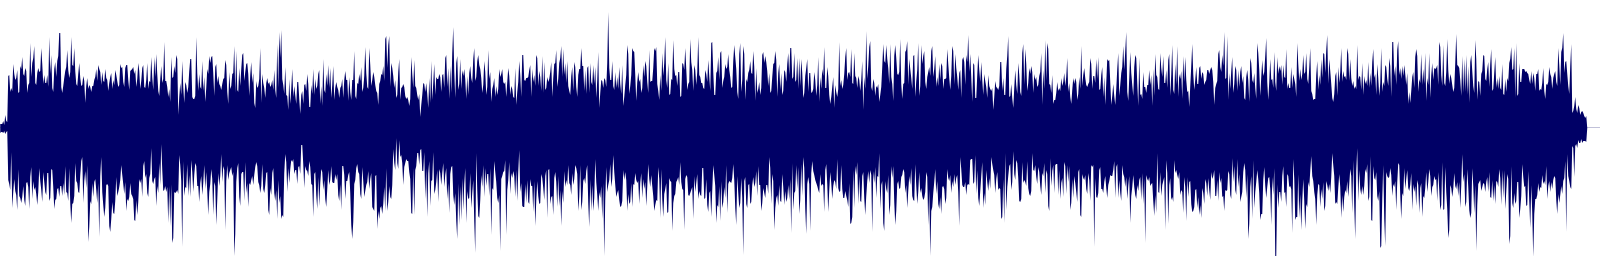 waveform of track #154030